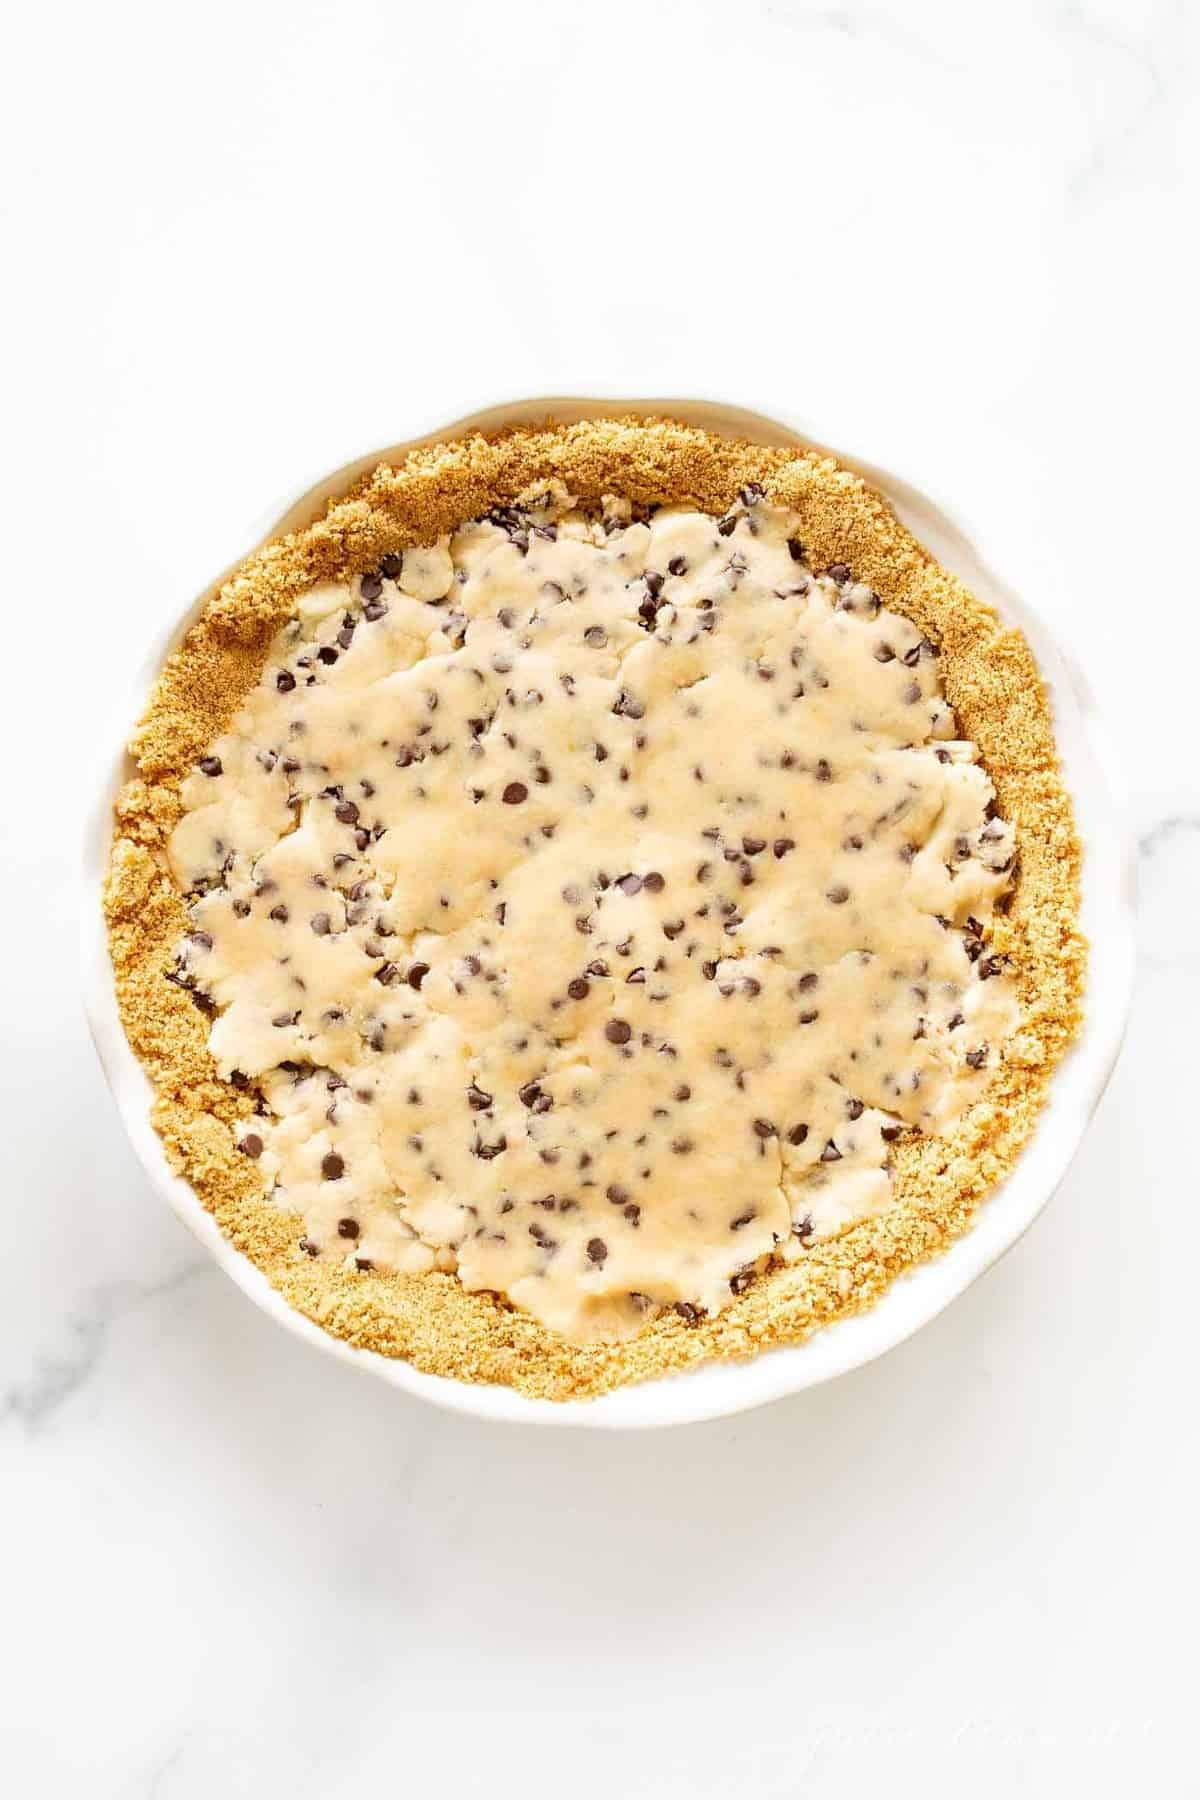 Cookie dough pie filling inside a homemade pie crust on a marble surface.